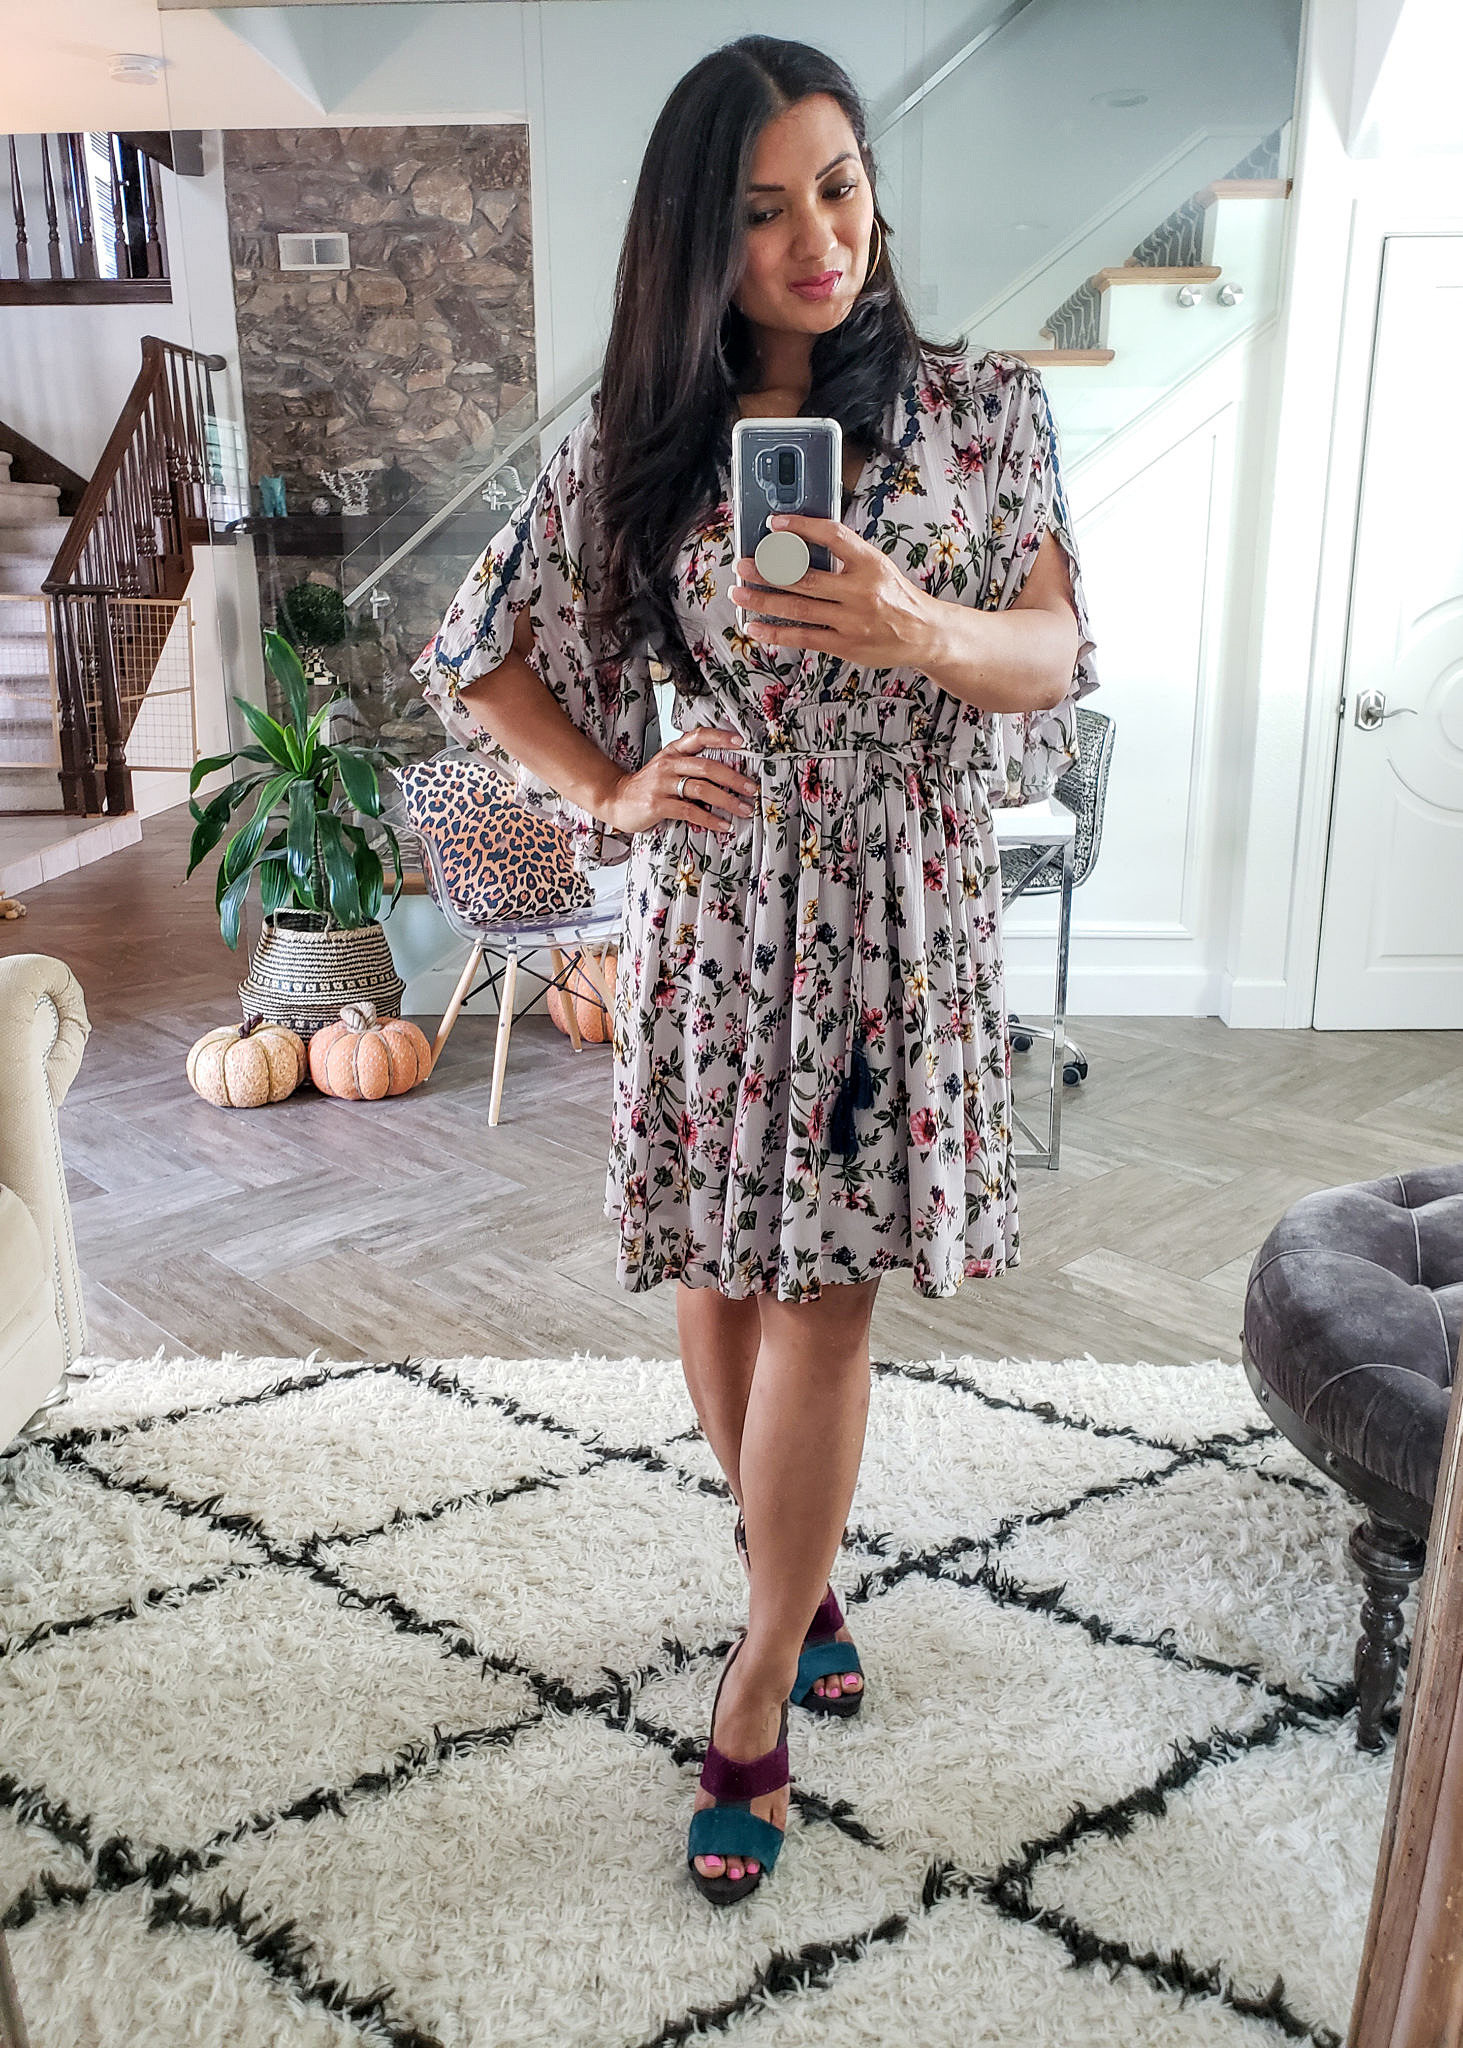 Have you tried the DailyLook Subscription Box? Orange County Style Blogger Debbie Savage is sharing inside her first DailyLook Subscription box here and why you should try it ASAP!